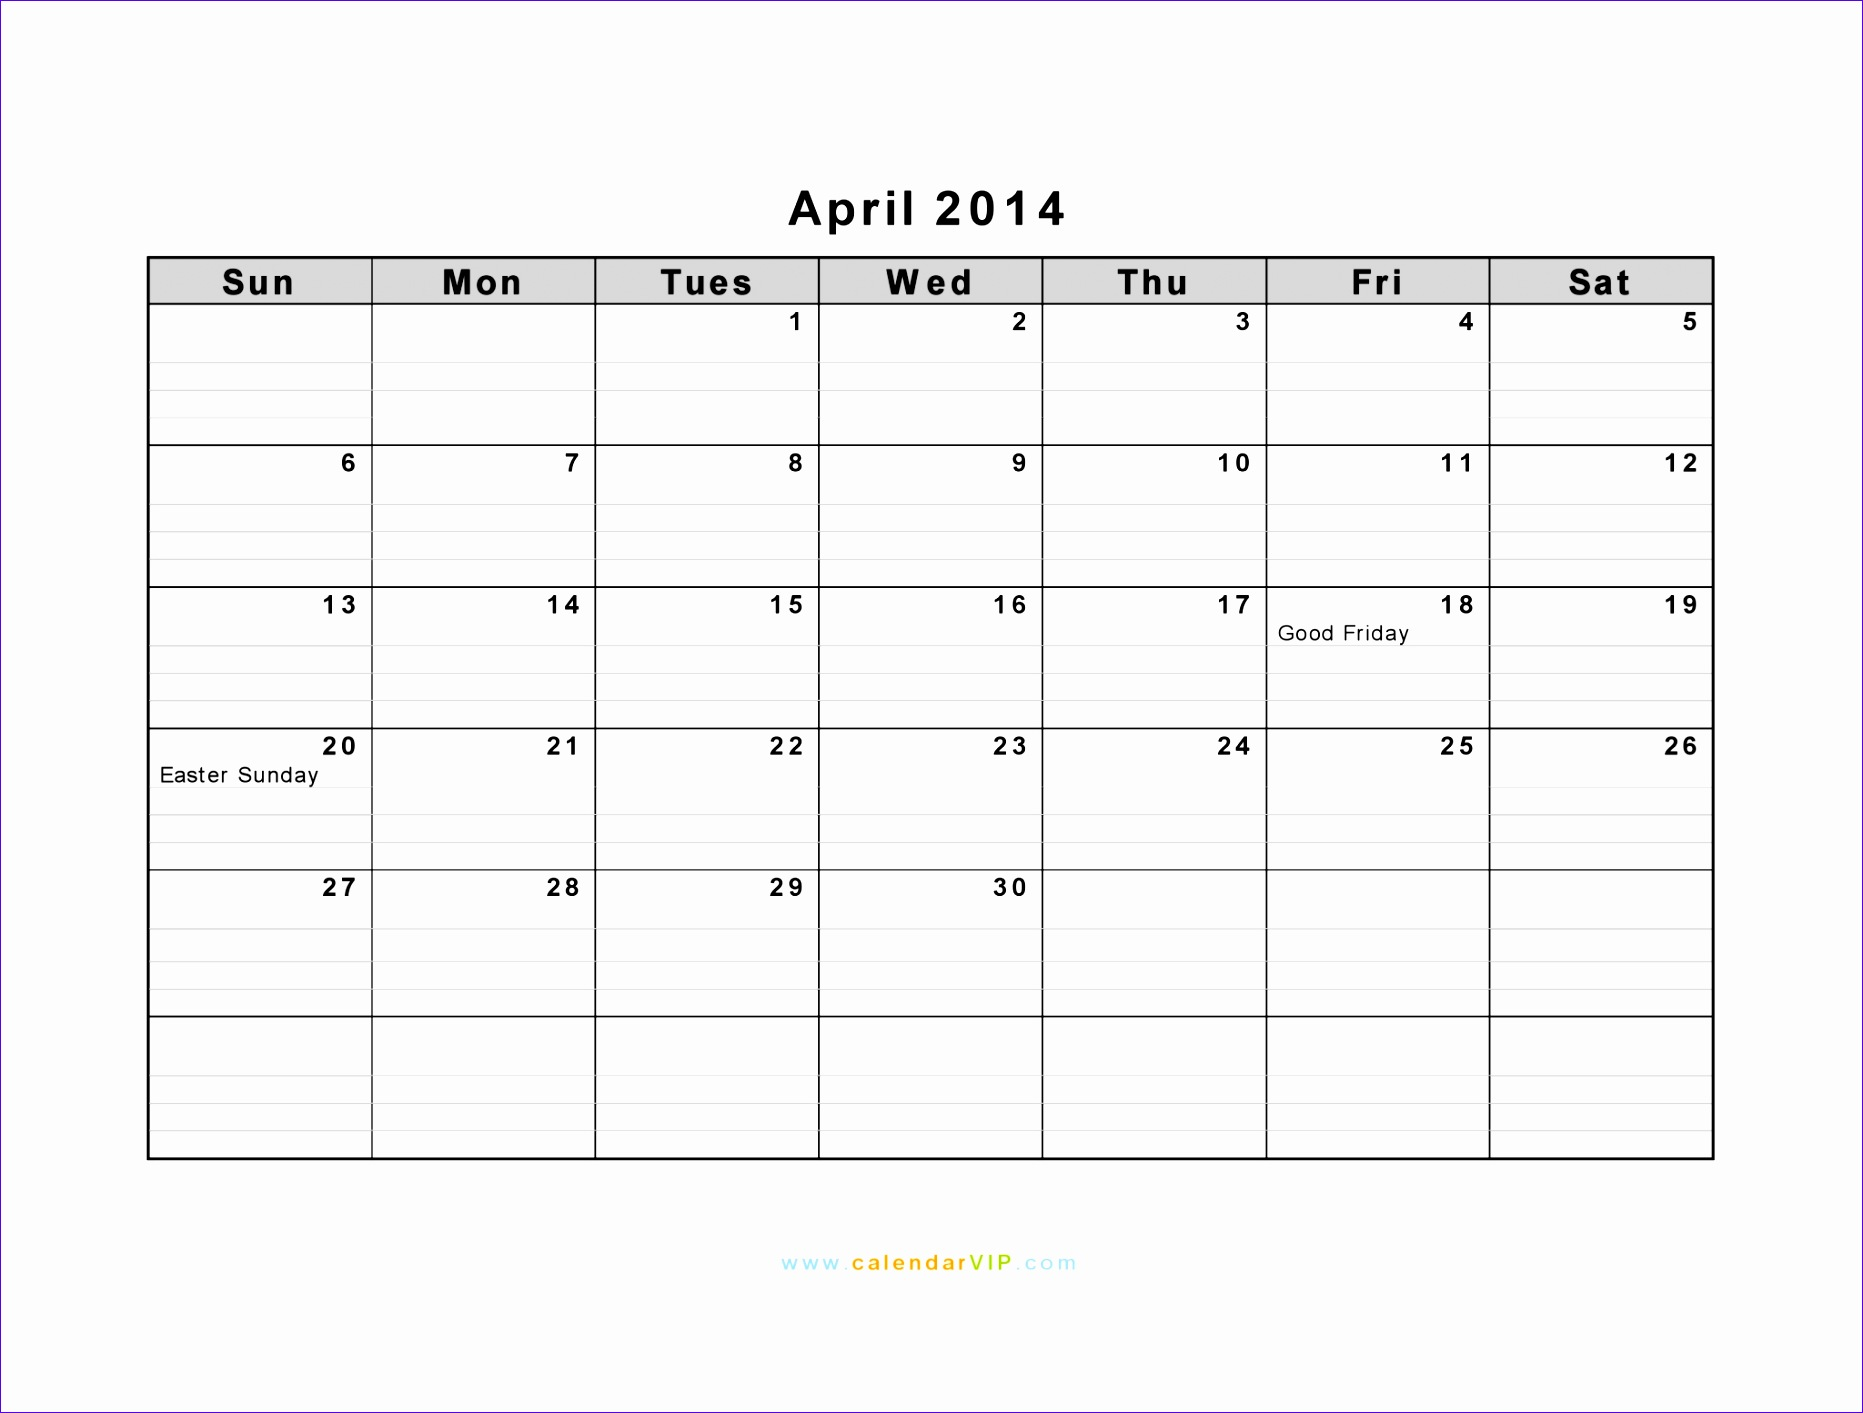 Excel Daily Calendar Template Btcts Inspirational April 2014 Calendar Blank Printable Calendar Template In 20481536